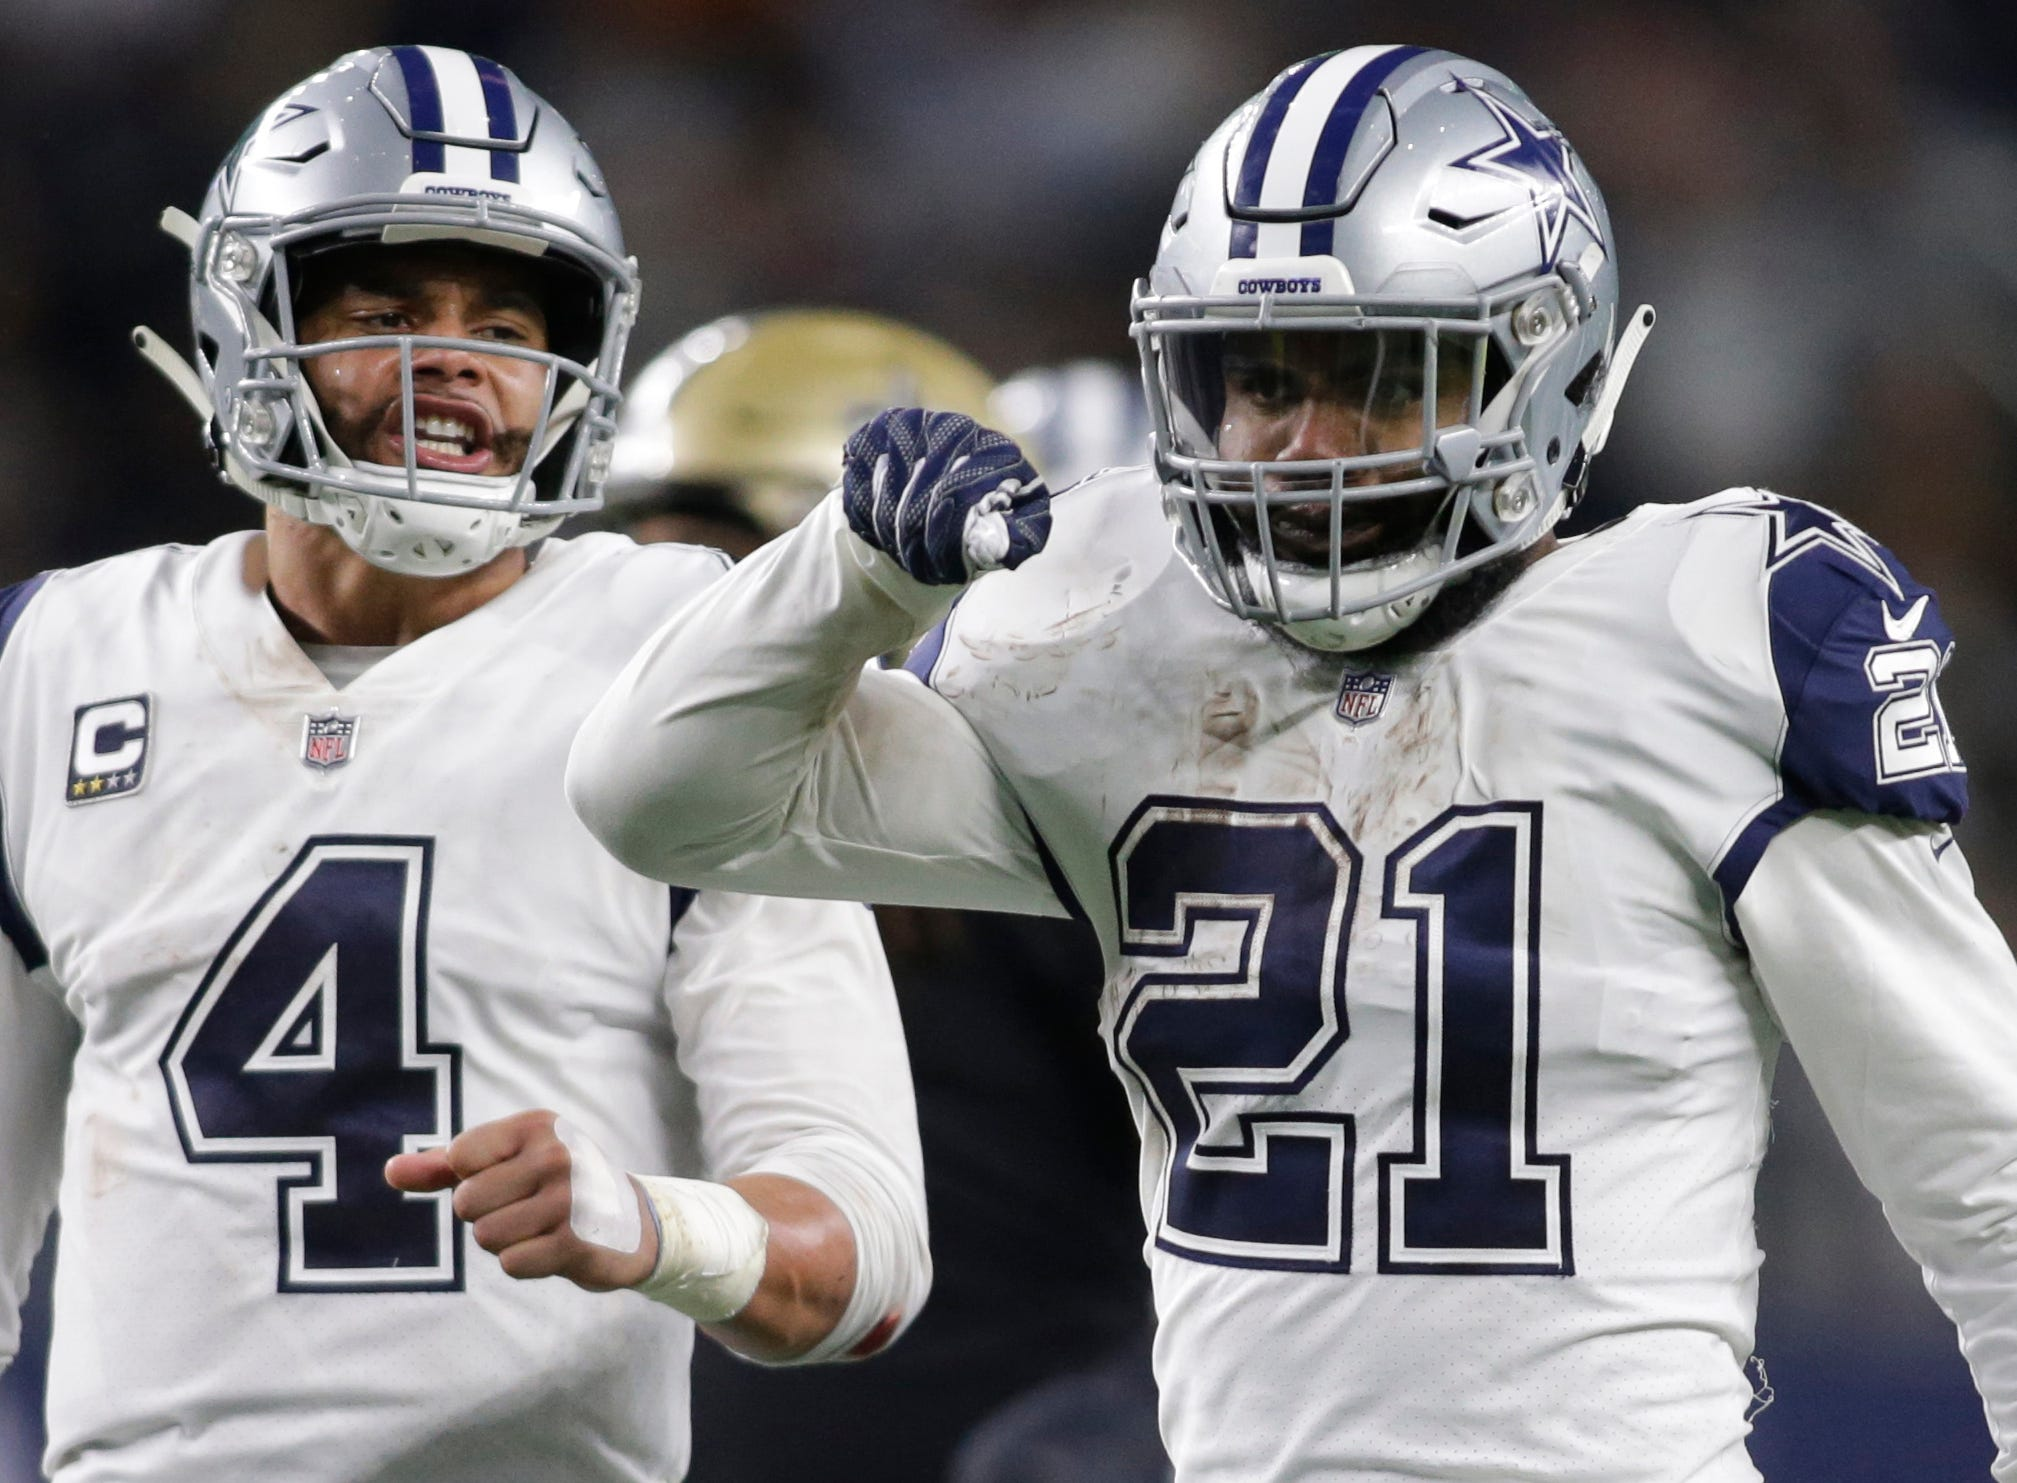 Ezekiel Elliott had a predictable response to the suggestion that the Cowboys might lighten his workload this season.